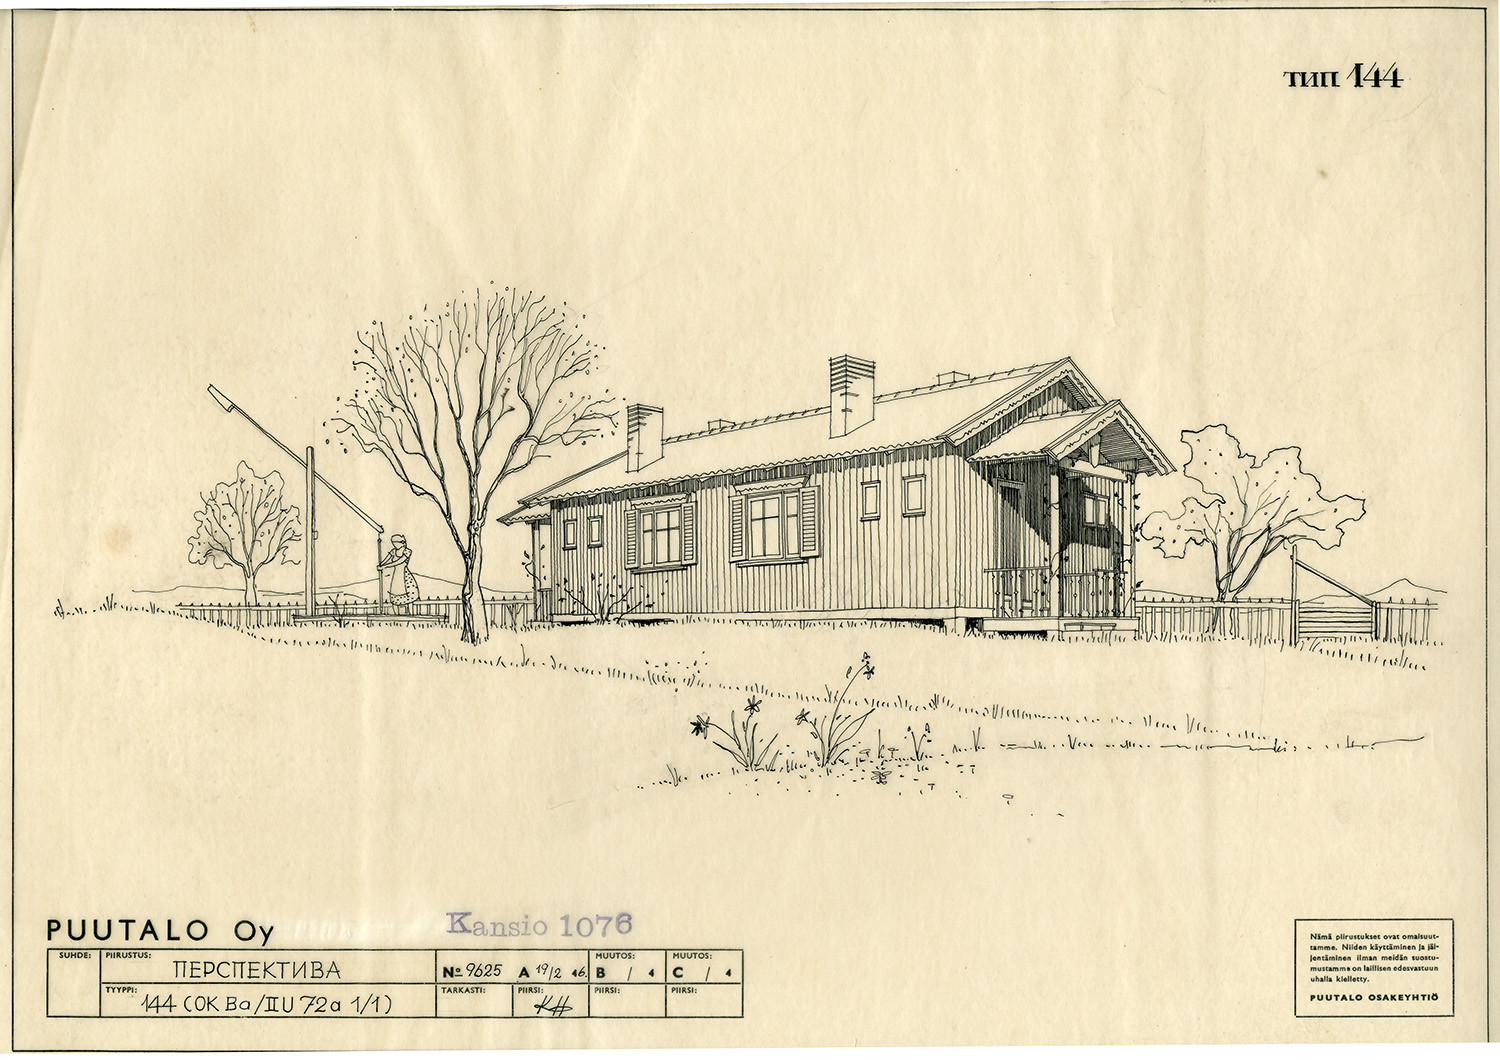 A drawing of a Puutalo Oy's house in the countryside. There is a woman in the yard fetching water from a well. There are flowers, trees and a lot of vegetation around.